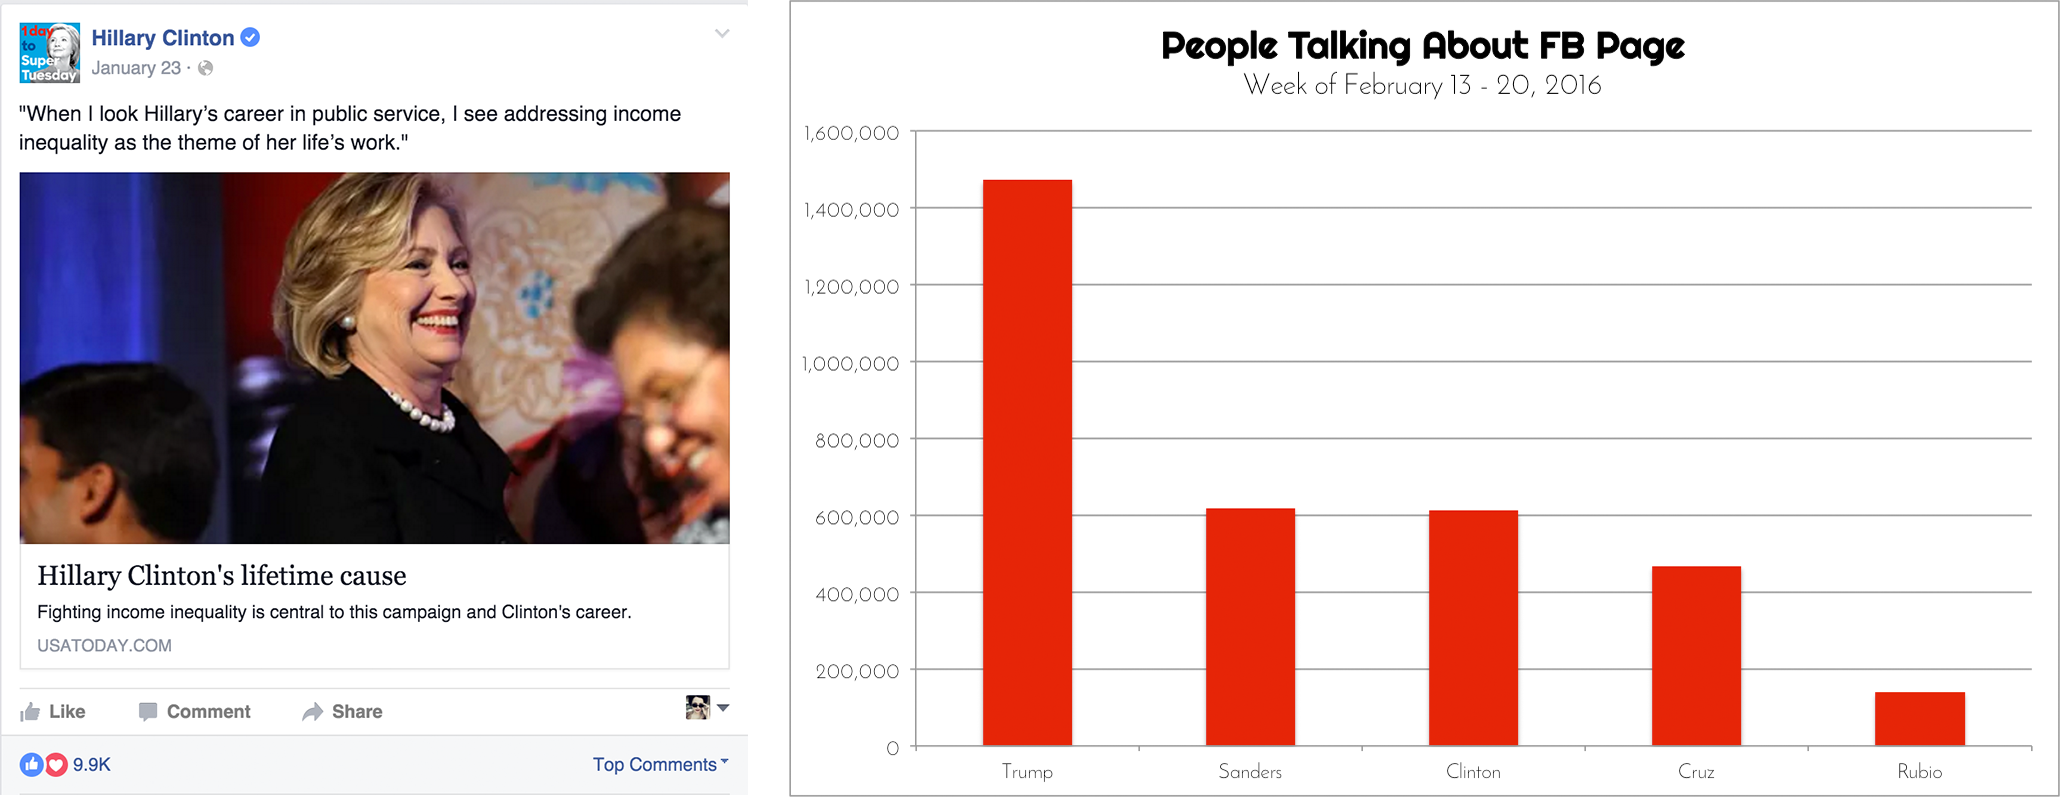 Clinton Fig. 3 People Talking About Facebook Page